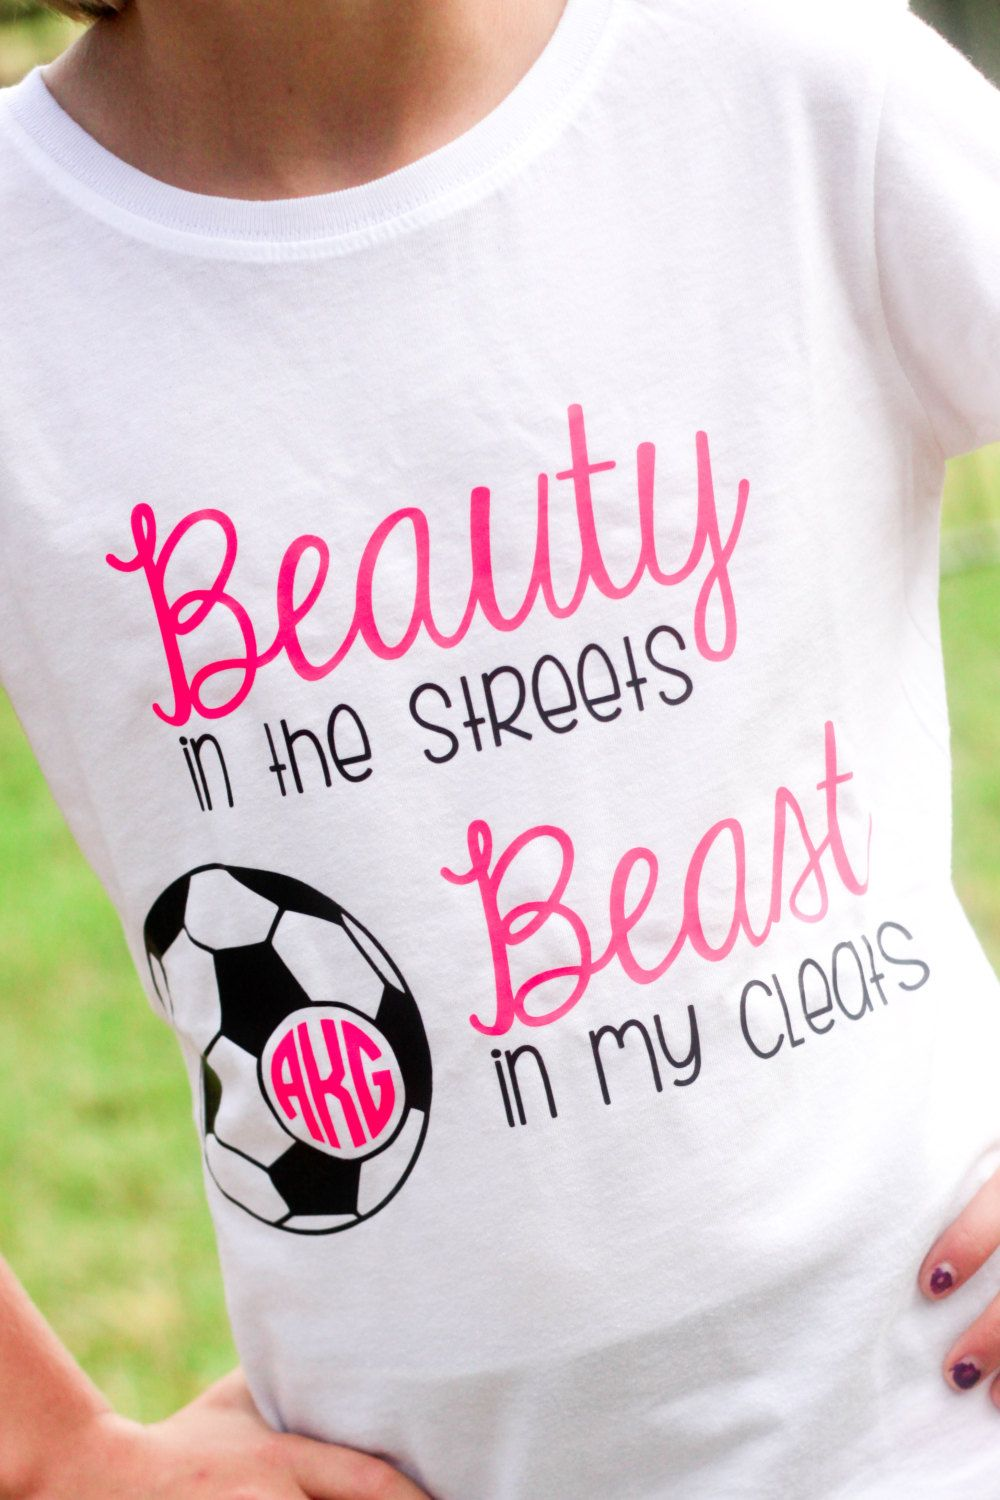 73982b26d Beauty In The Streets Beast In My Cleats Soccer Monogram Shirt by  CutesyTDesigns on Etsy